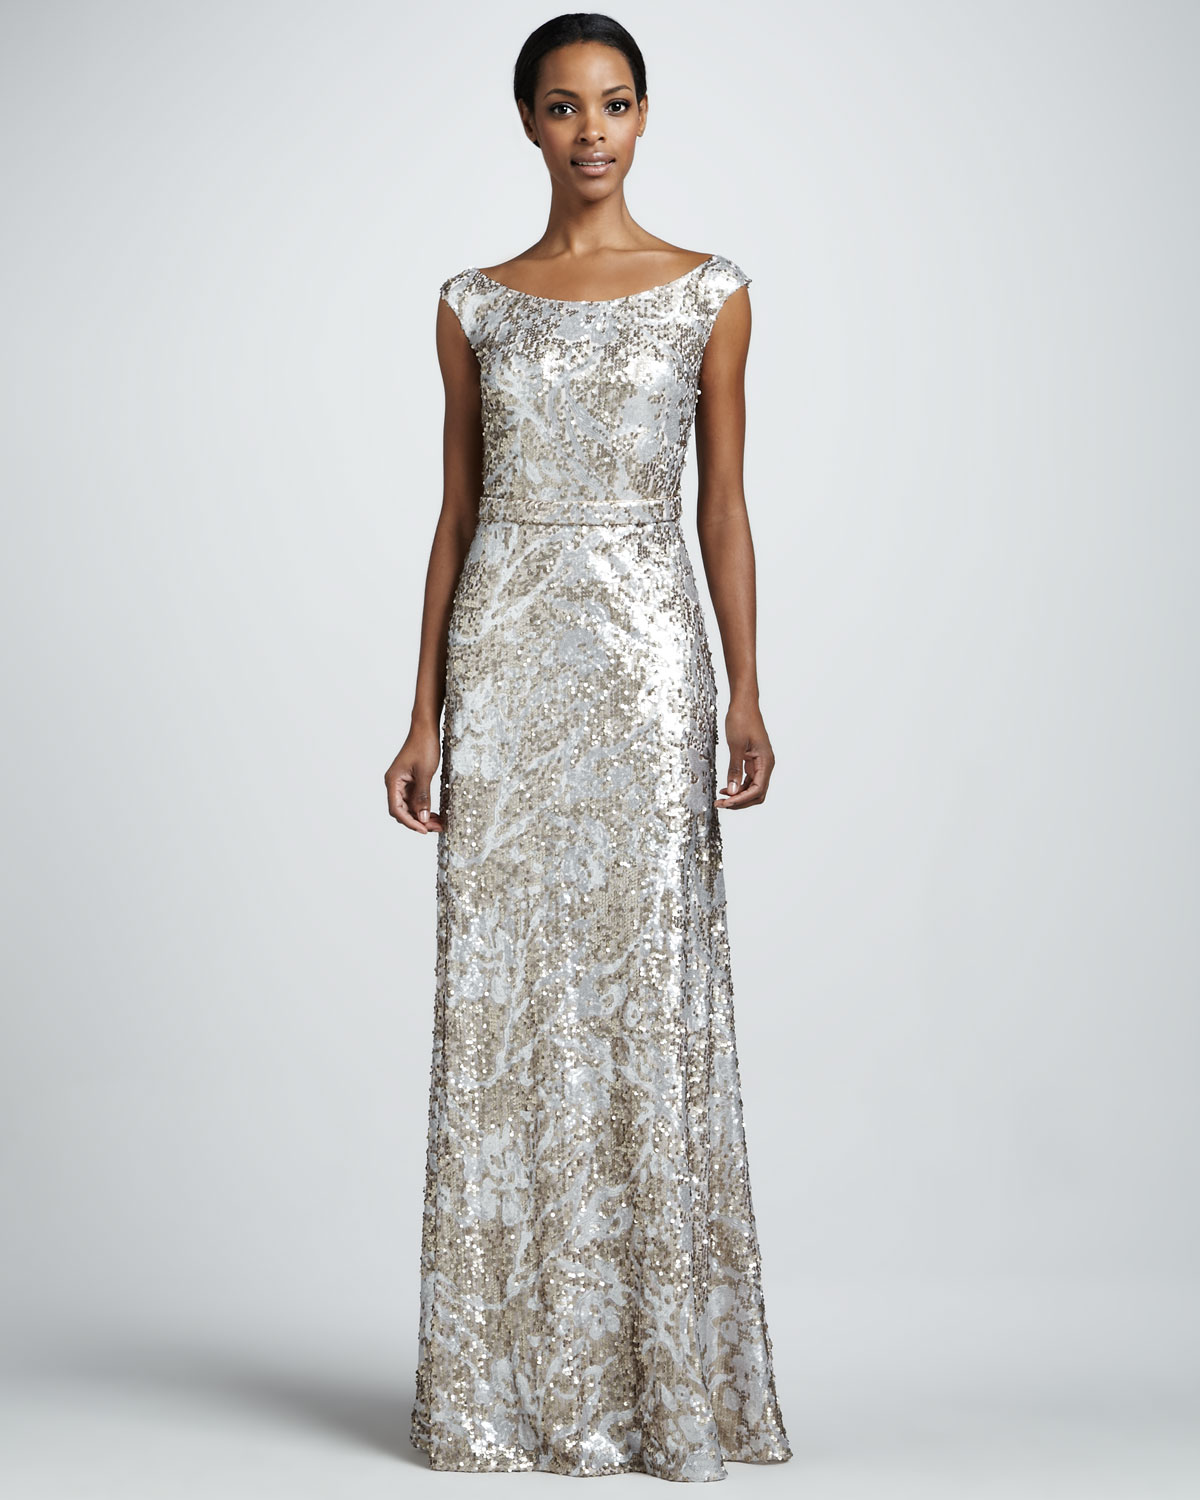 Long Gowns For Wedding Guests: Silver Champagne Sequin Long Wedding Guest Dress